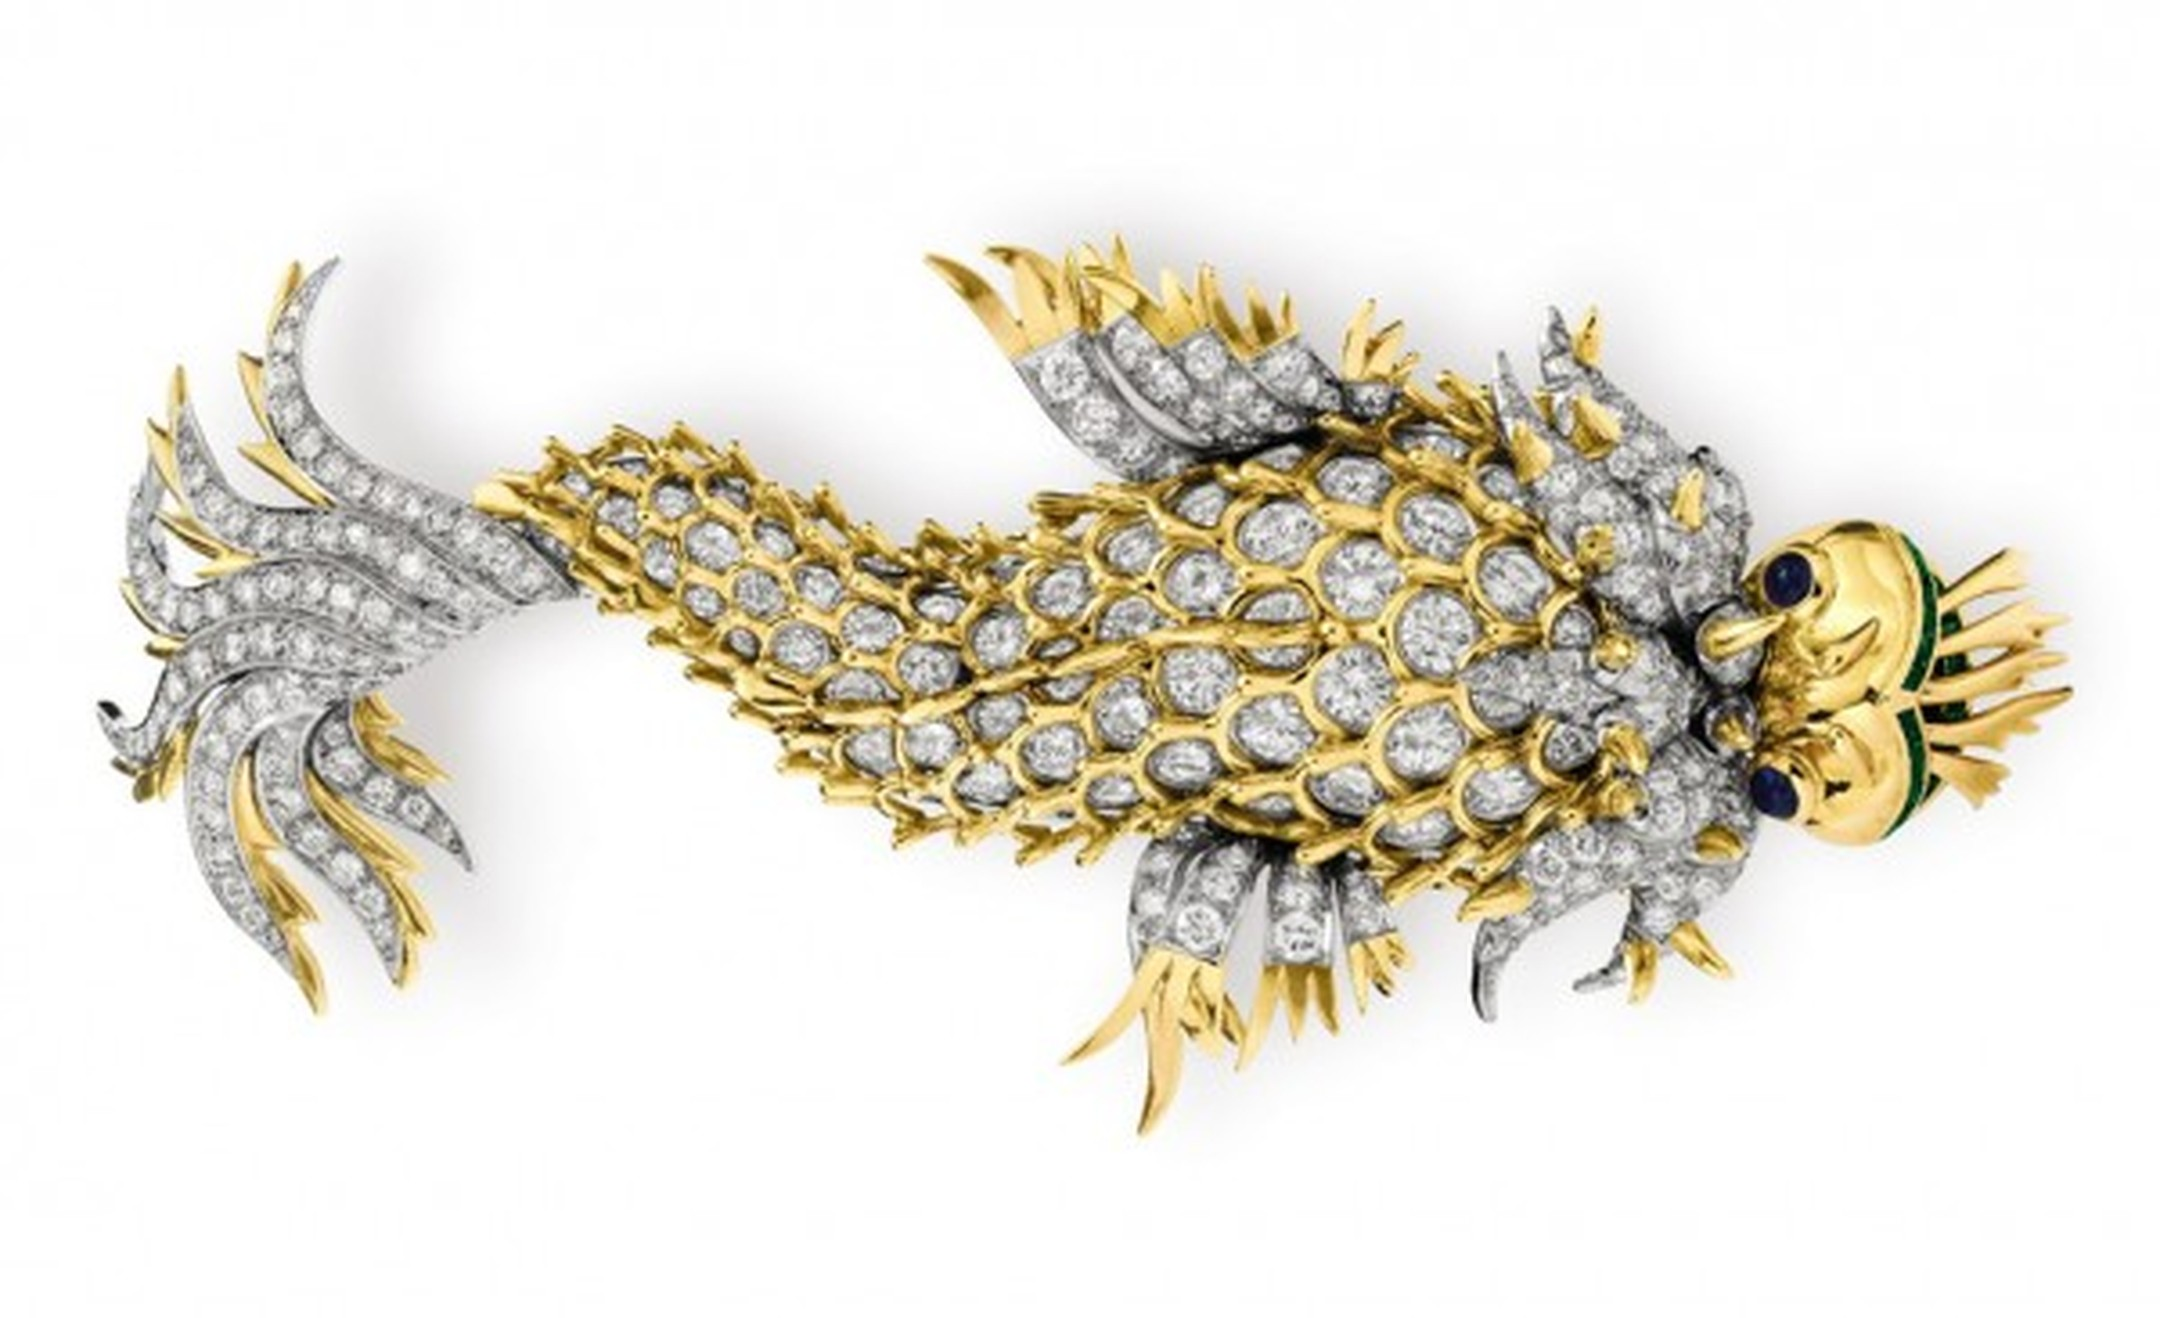 Night of the Iguana brooch by Schlumberger at Tiffany from Richard Burton.